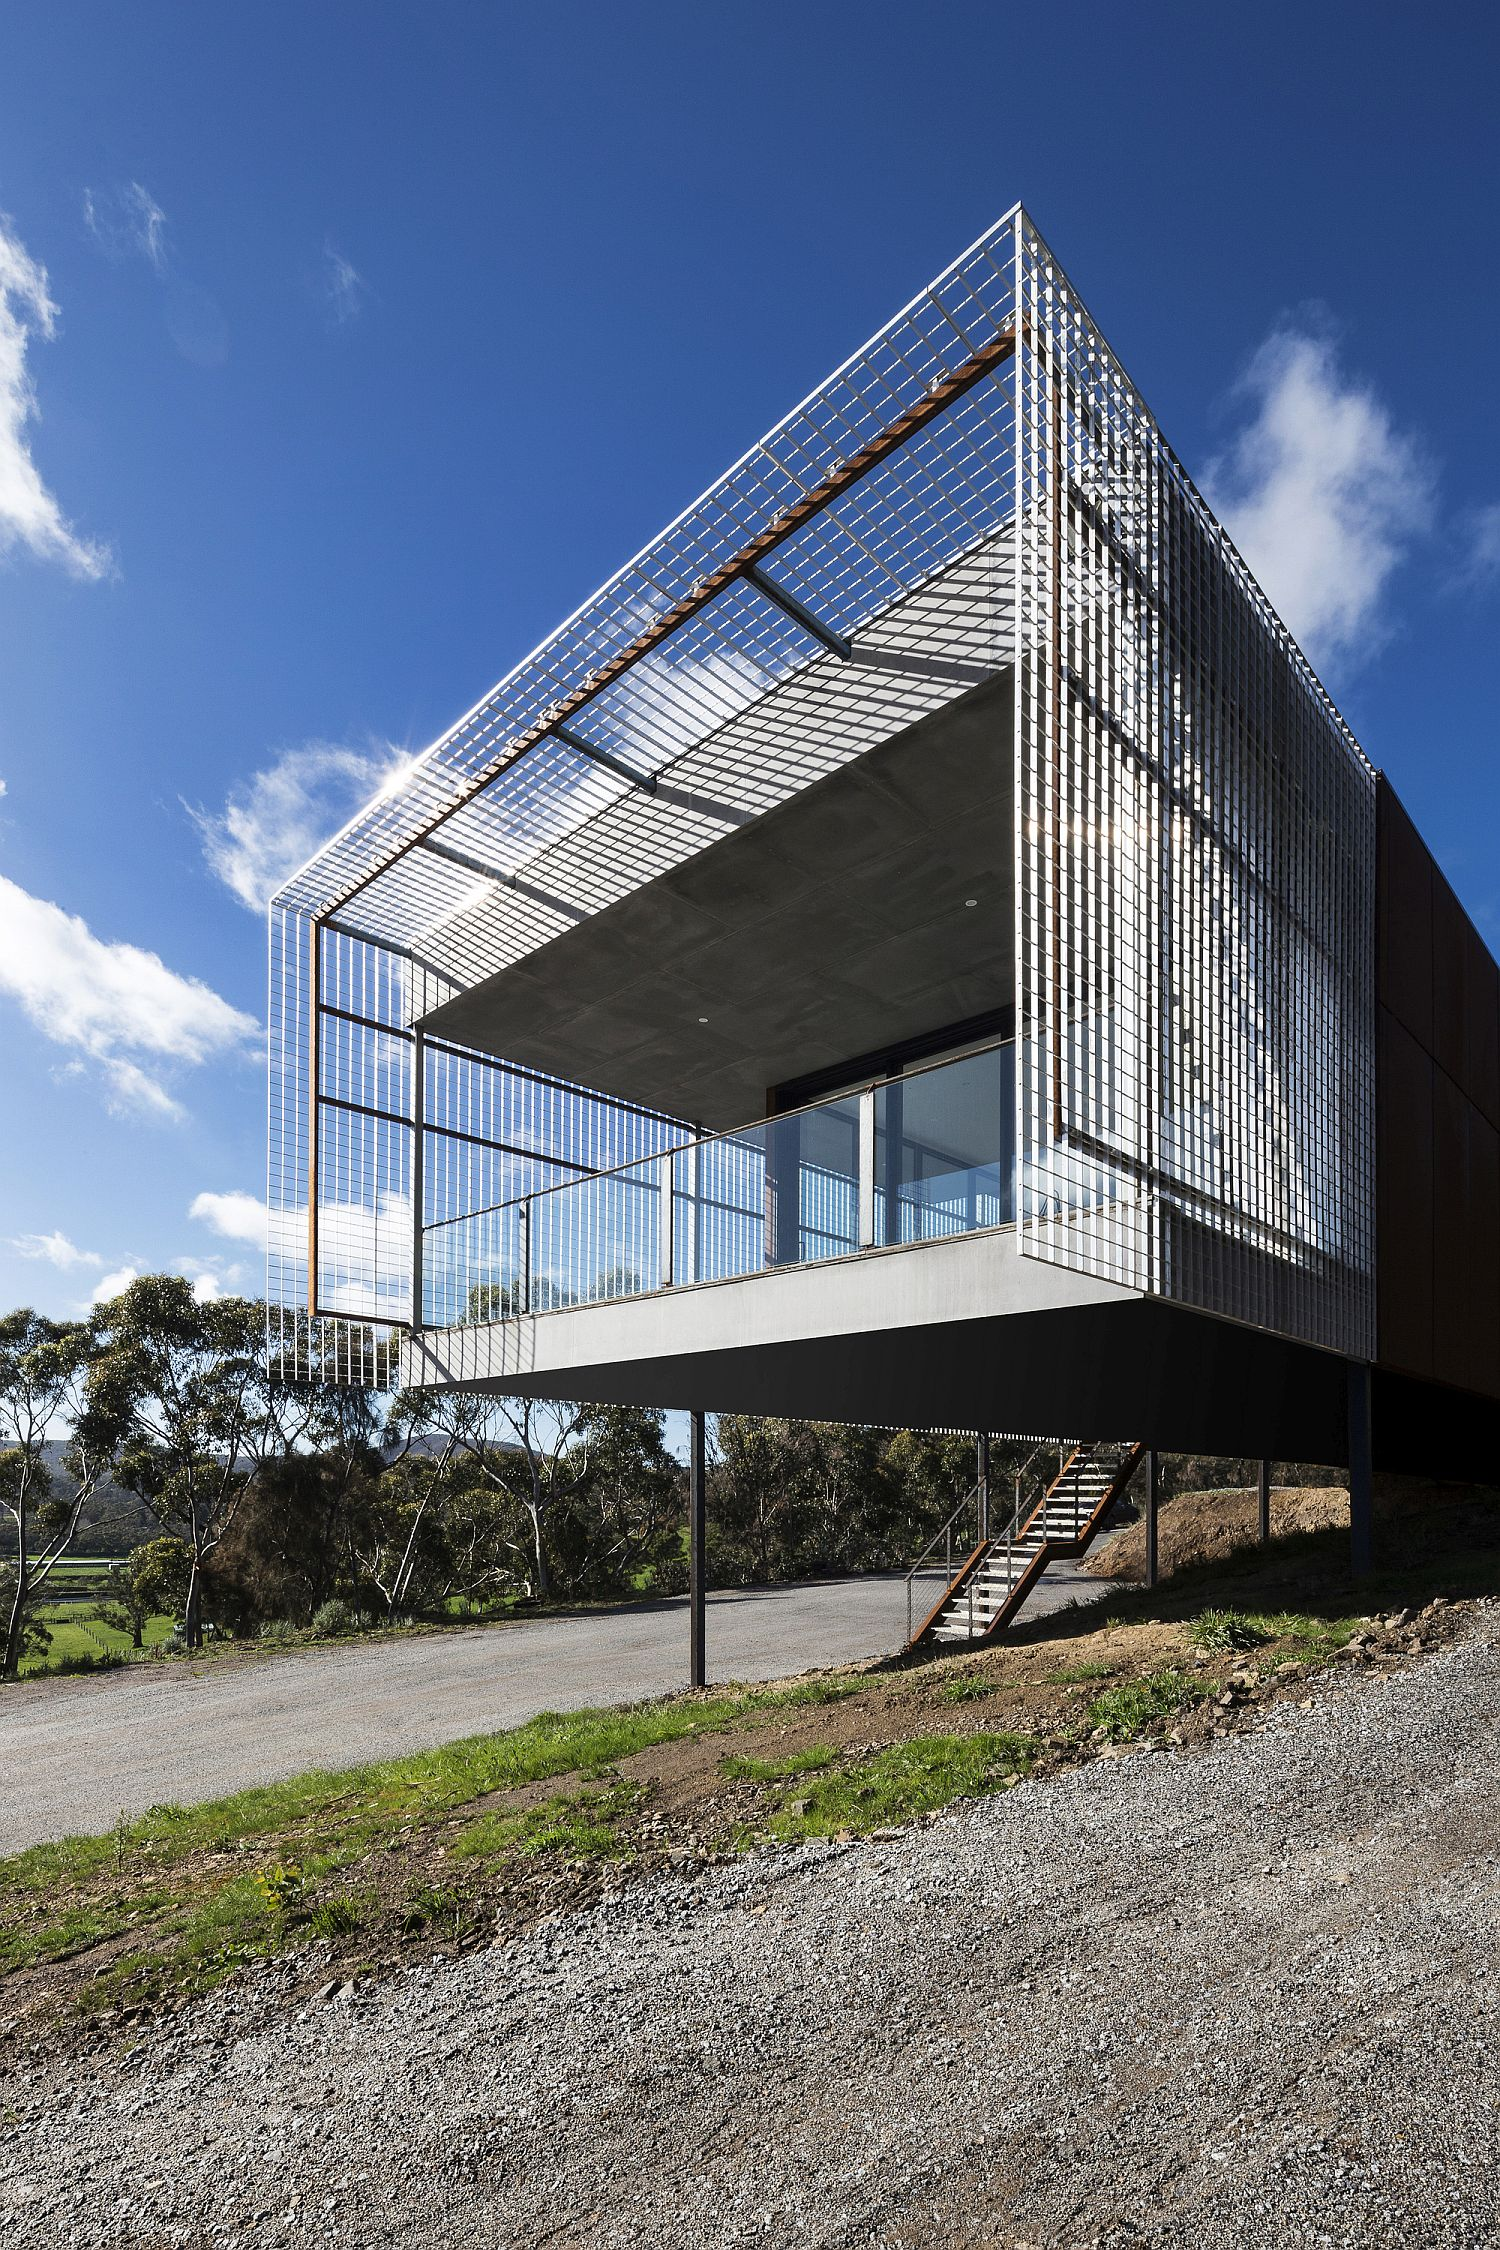 Deck of the Mount Macedon House cleverly concealed in a wiry frame